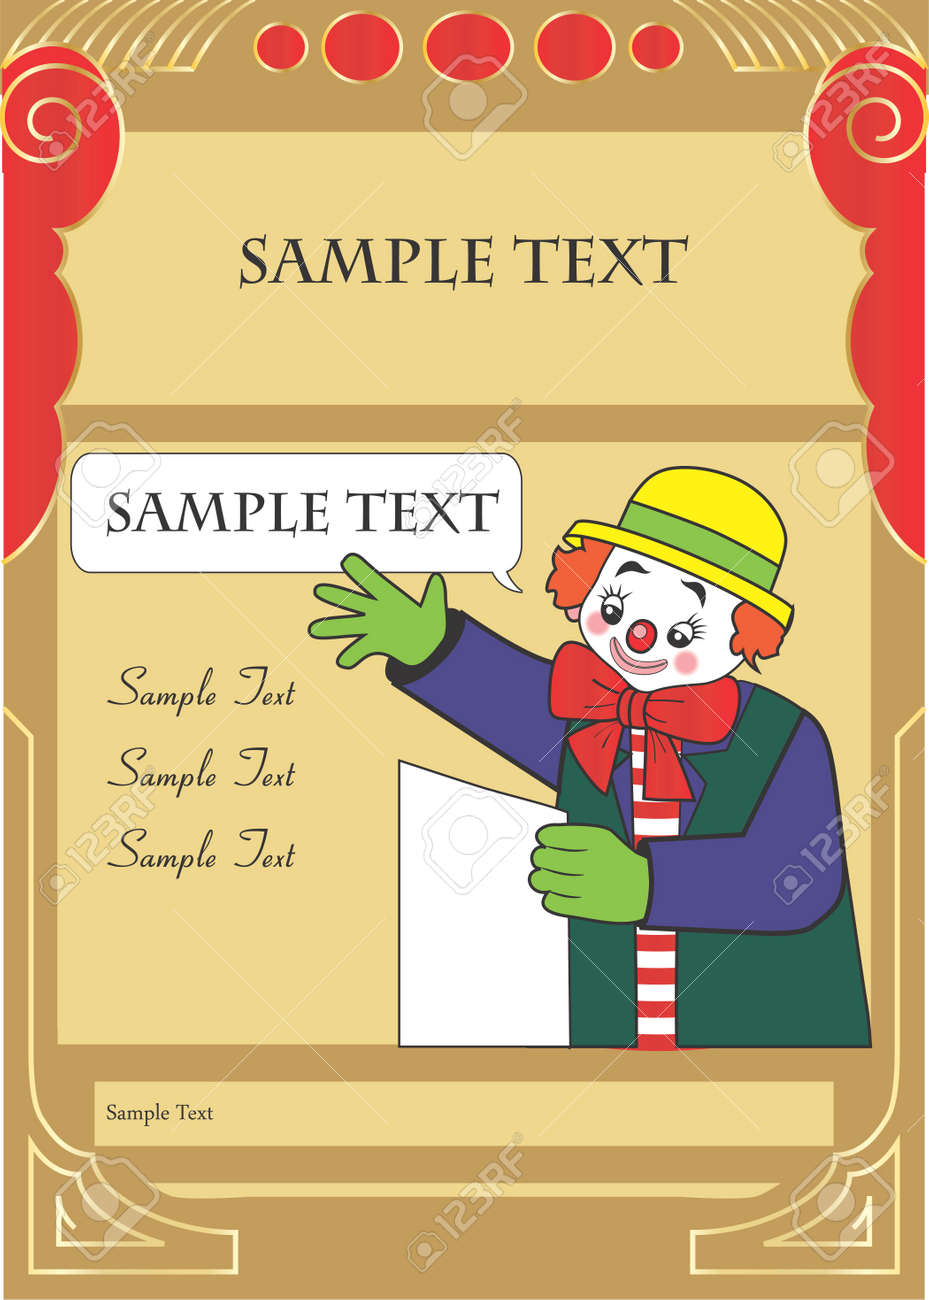 happy clown party invitation template for kids with sample text